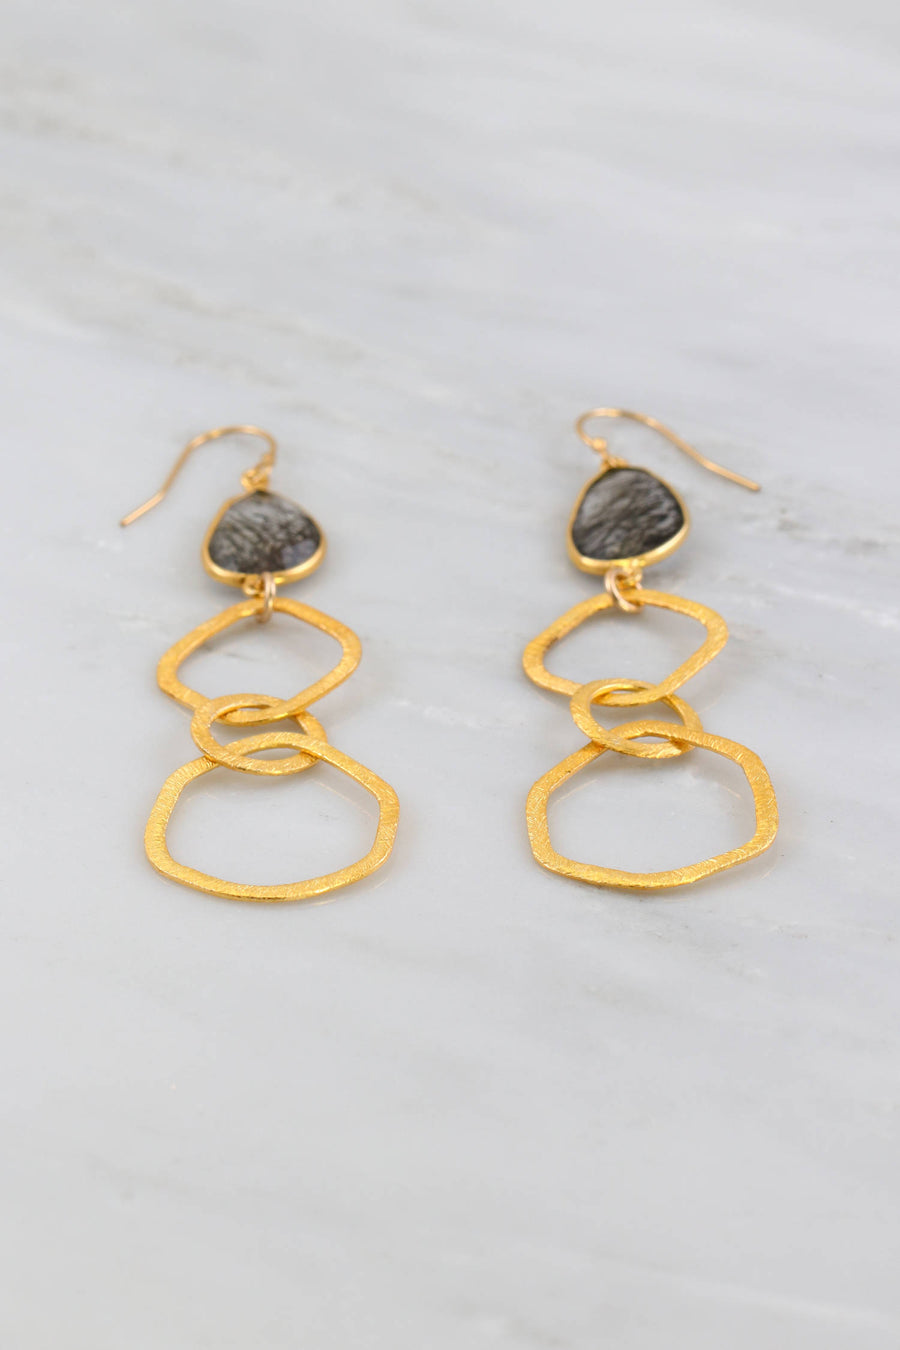 Long linked earring, Three Round link earrings, Loop Earring, Brushed metal earring, Gold link earring Dangle and drop Textured earring